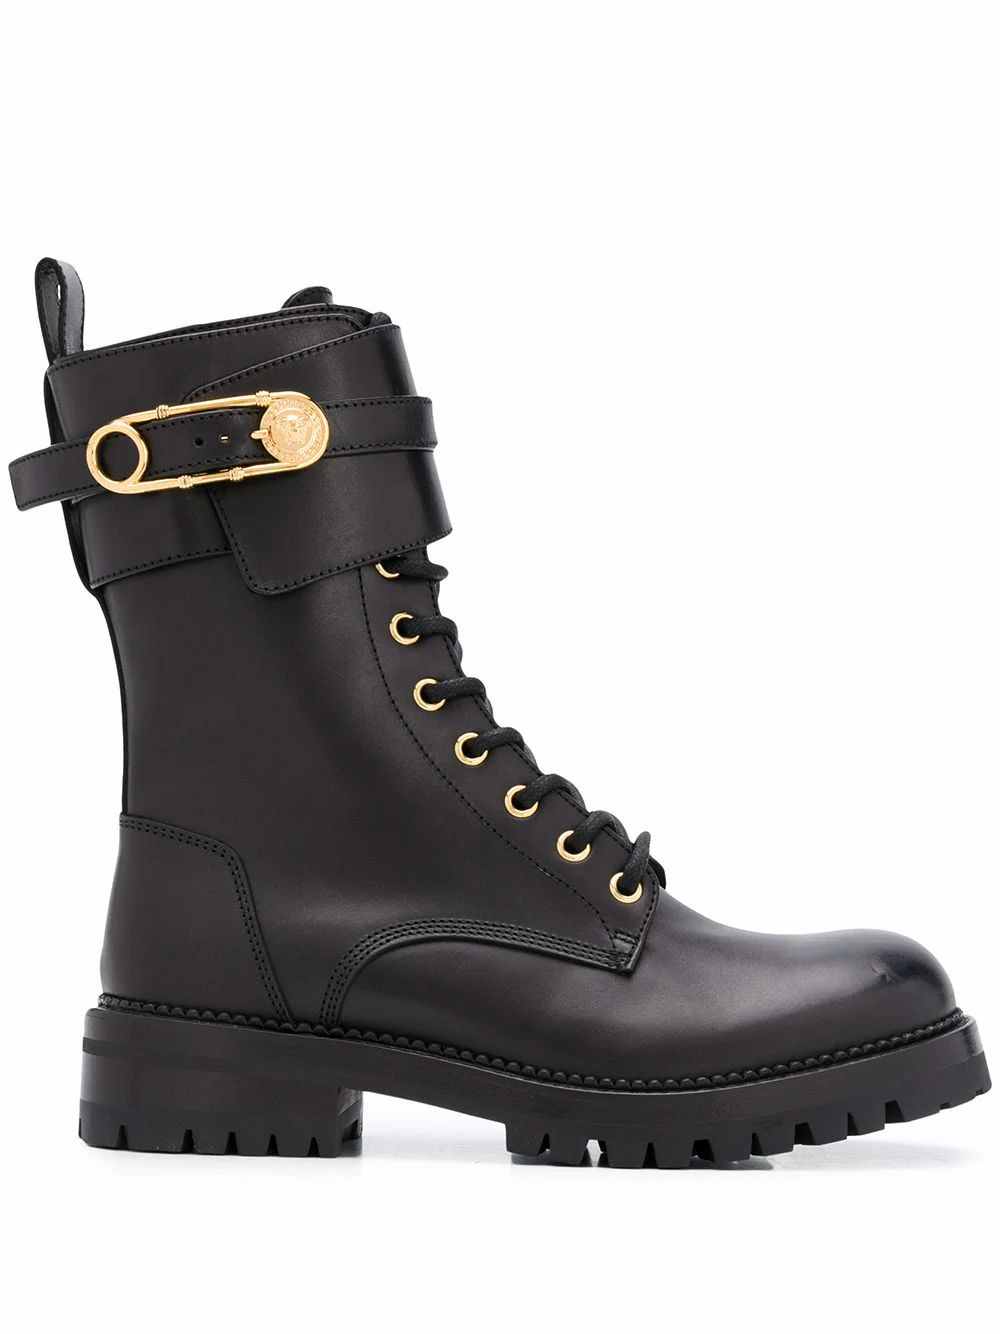 Versace VERSACE WOMEN'S BLACK LEATHER ANKLE BOOTS